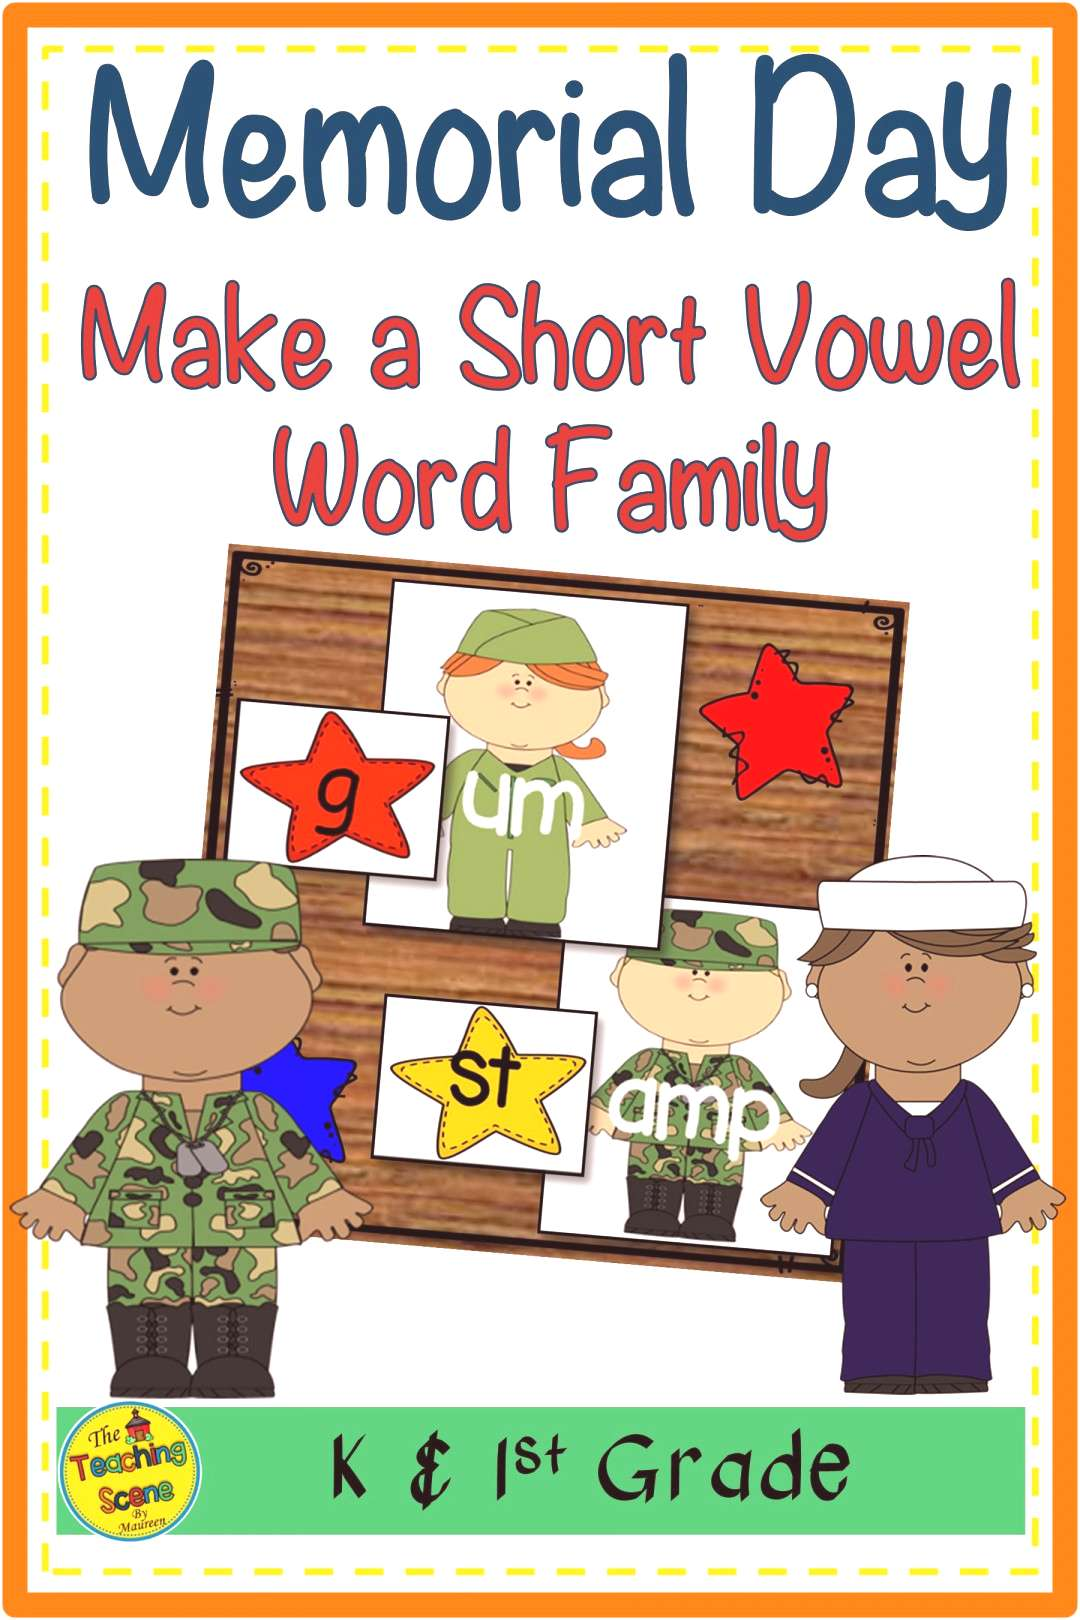 Memorial Day Make a Short Vowel Word Family Do you need a Memorial Day phonics center or activity?